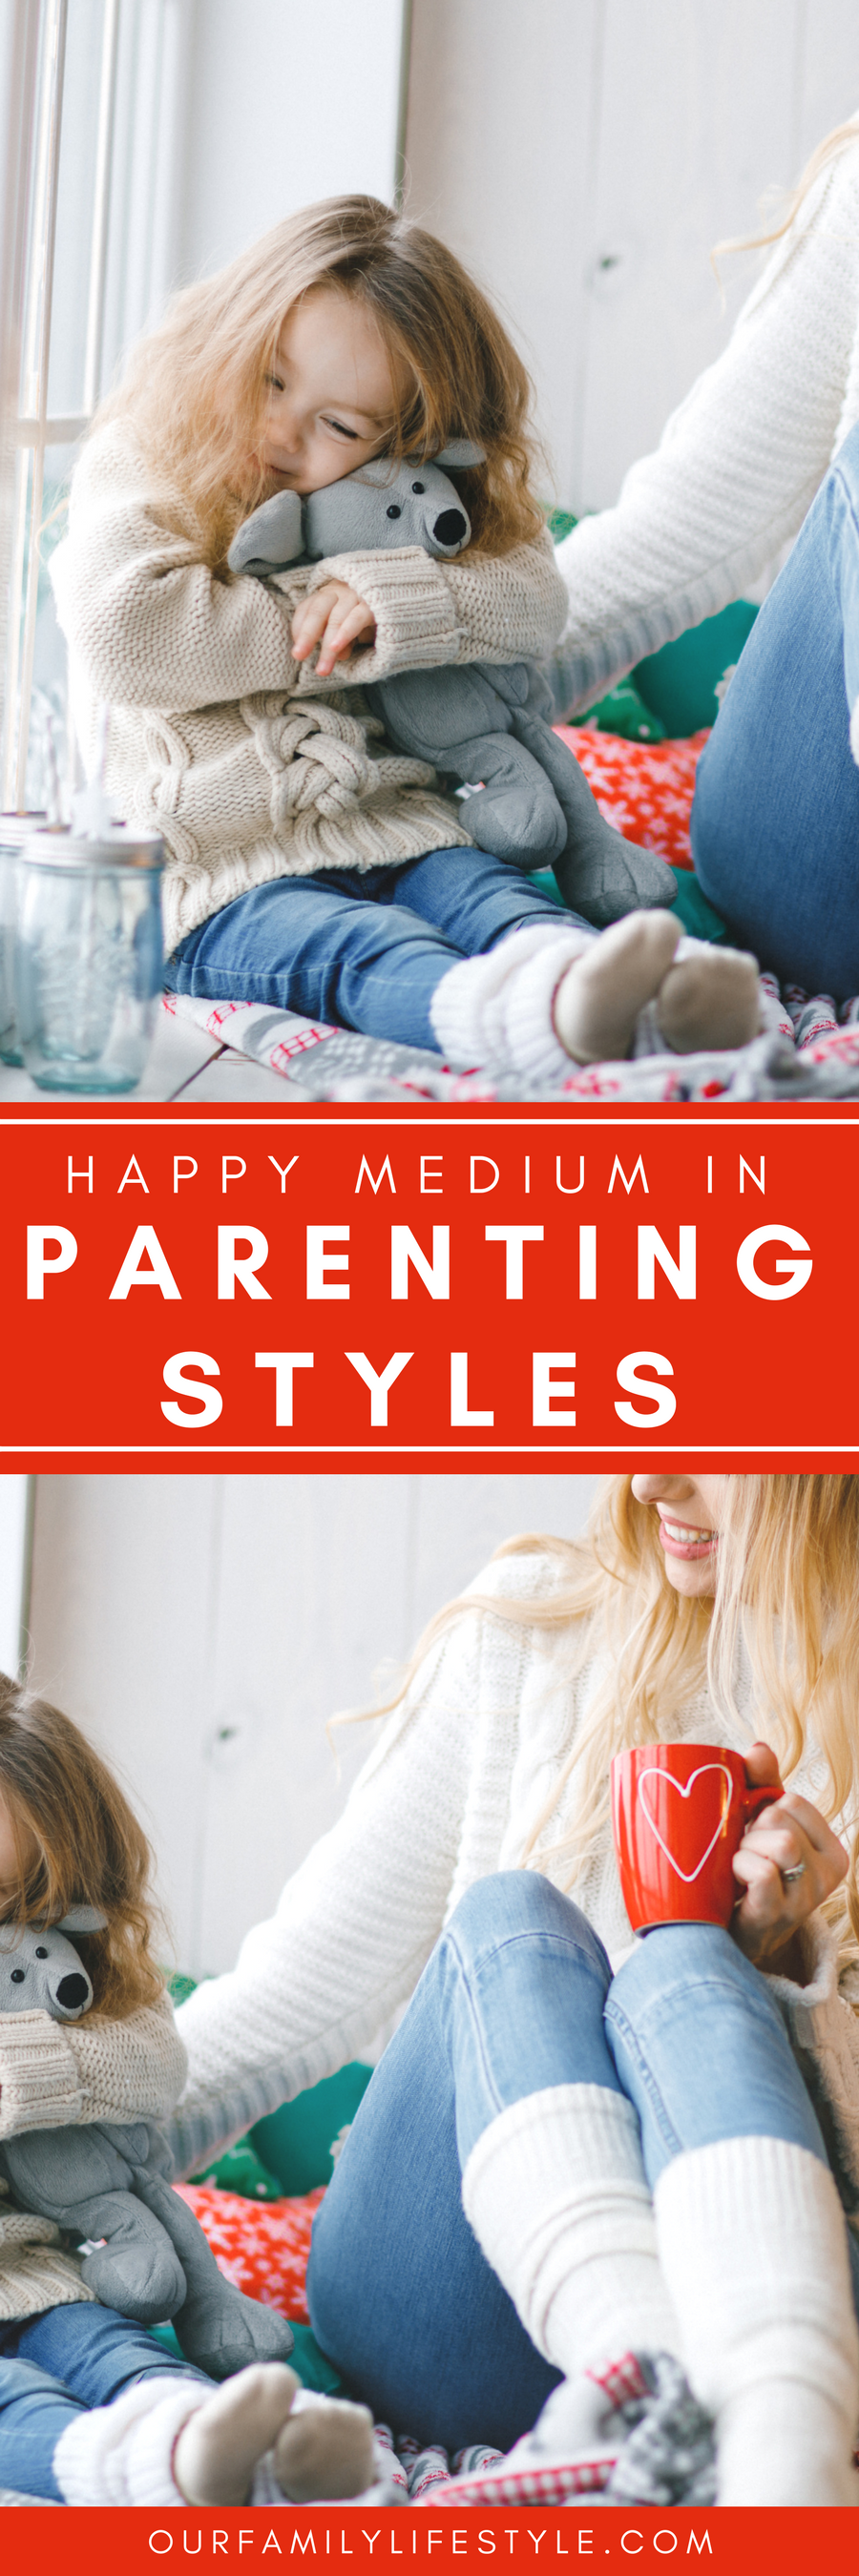 Through various studies and plenty of research,psychologists came up with four parenting styles. Each one representing adimension of parenting behavior. How do you find the happy medium in parenting?